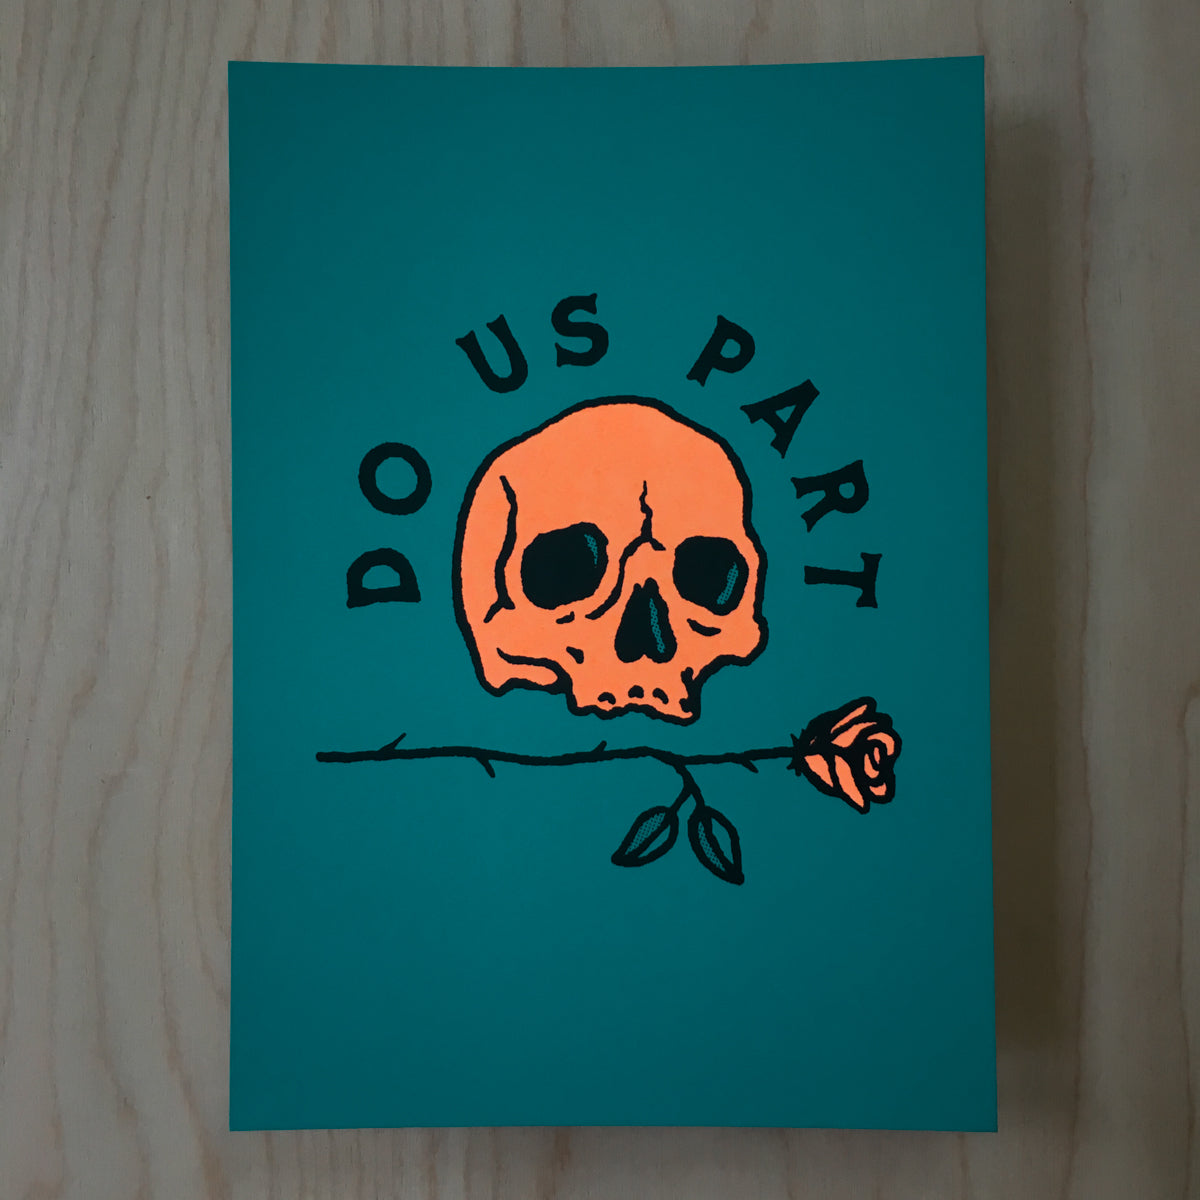 Do Us Part - Signed Print #180